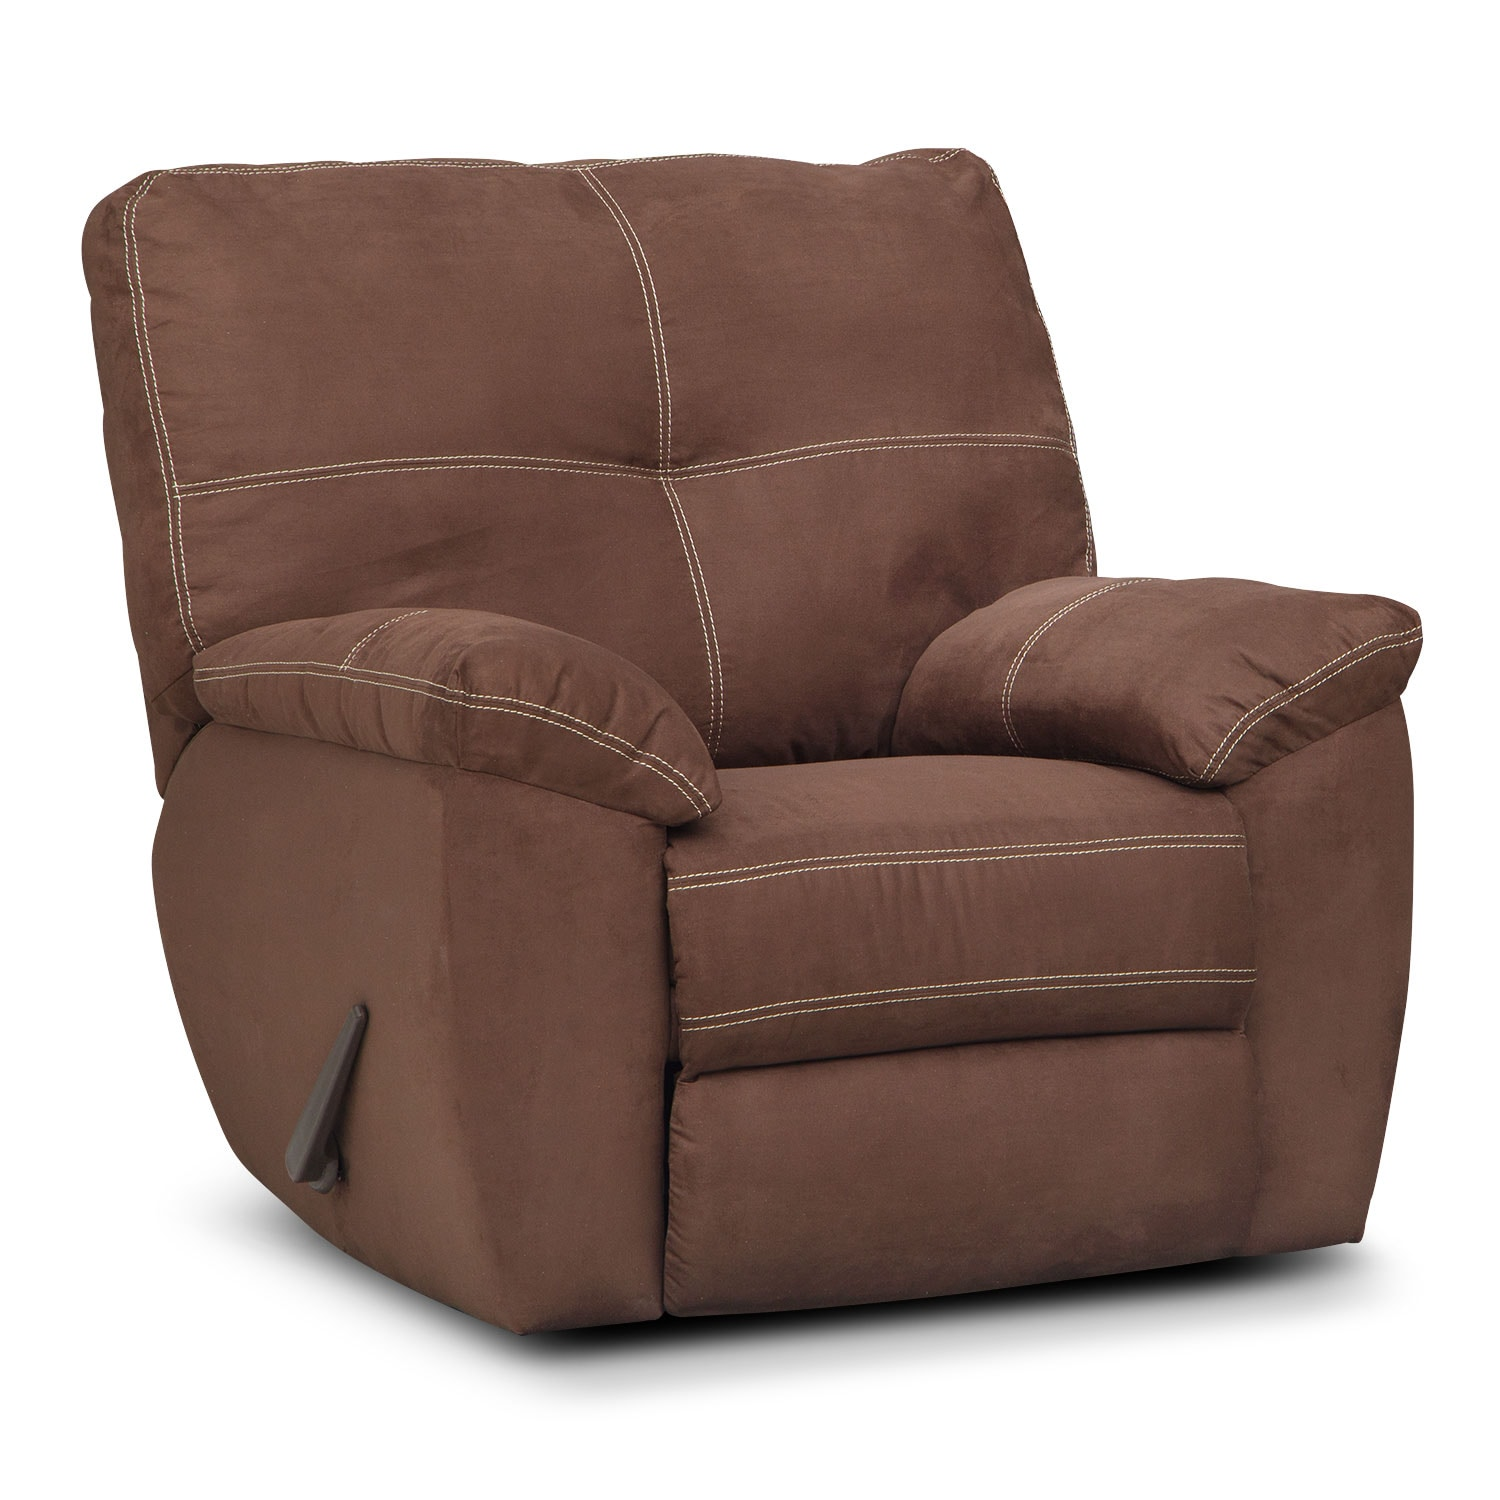 Living Room Furniture - Rialto Glider Recliner - Coffee